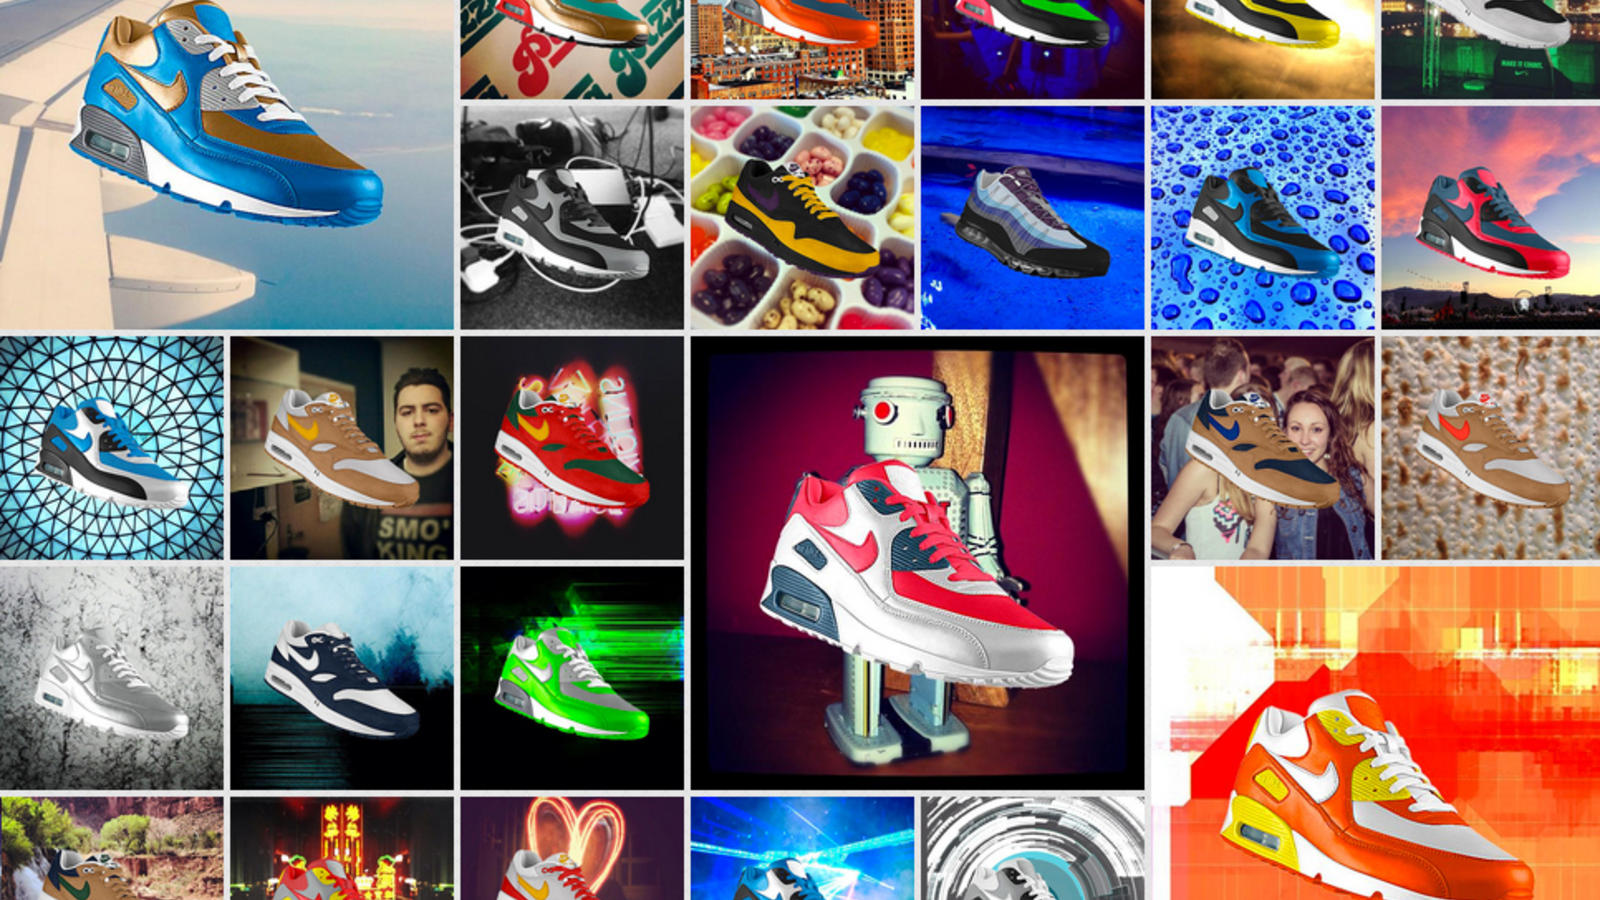 ab9c51b9442 Nike PHOTOiD  The Power of an Image Takes on New Meaning - Nike News